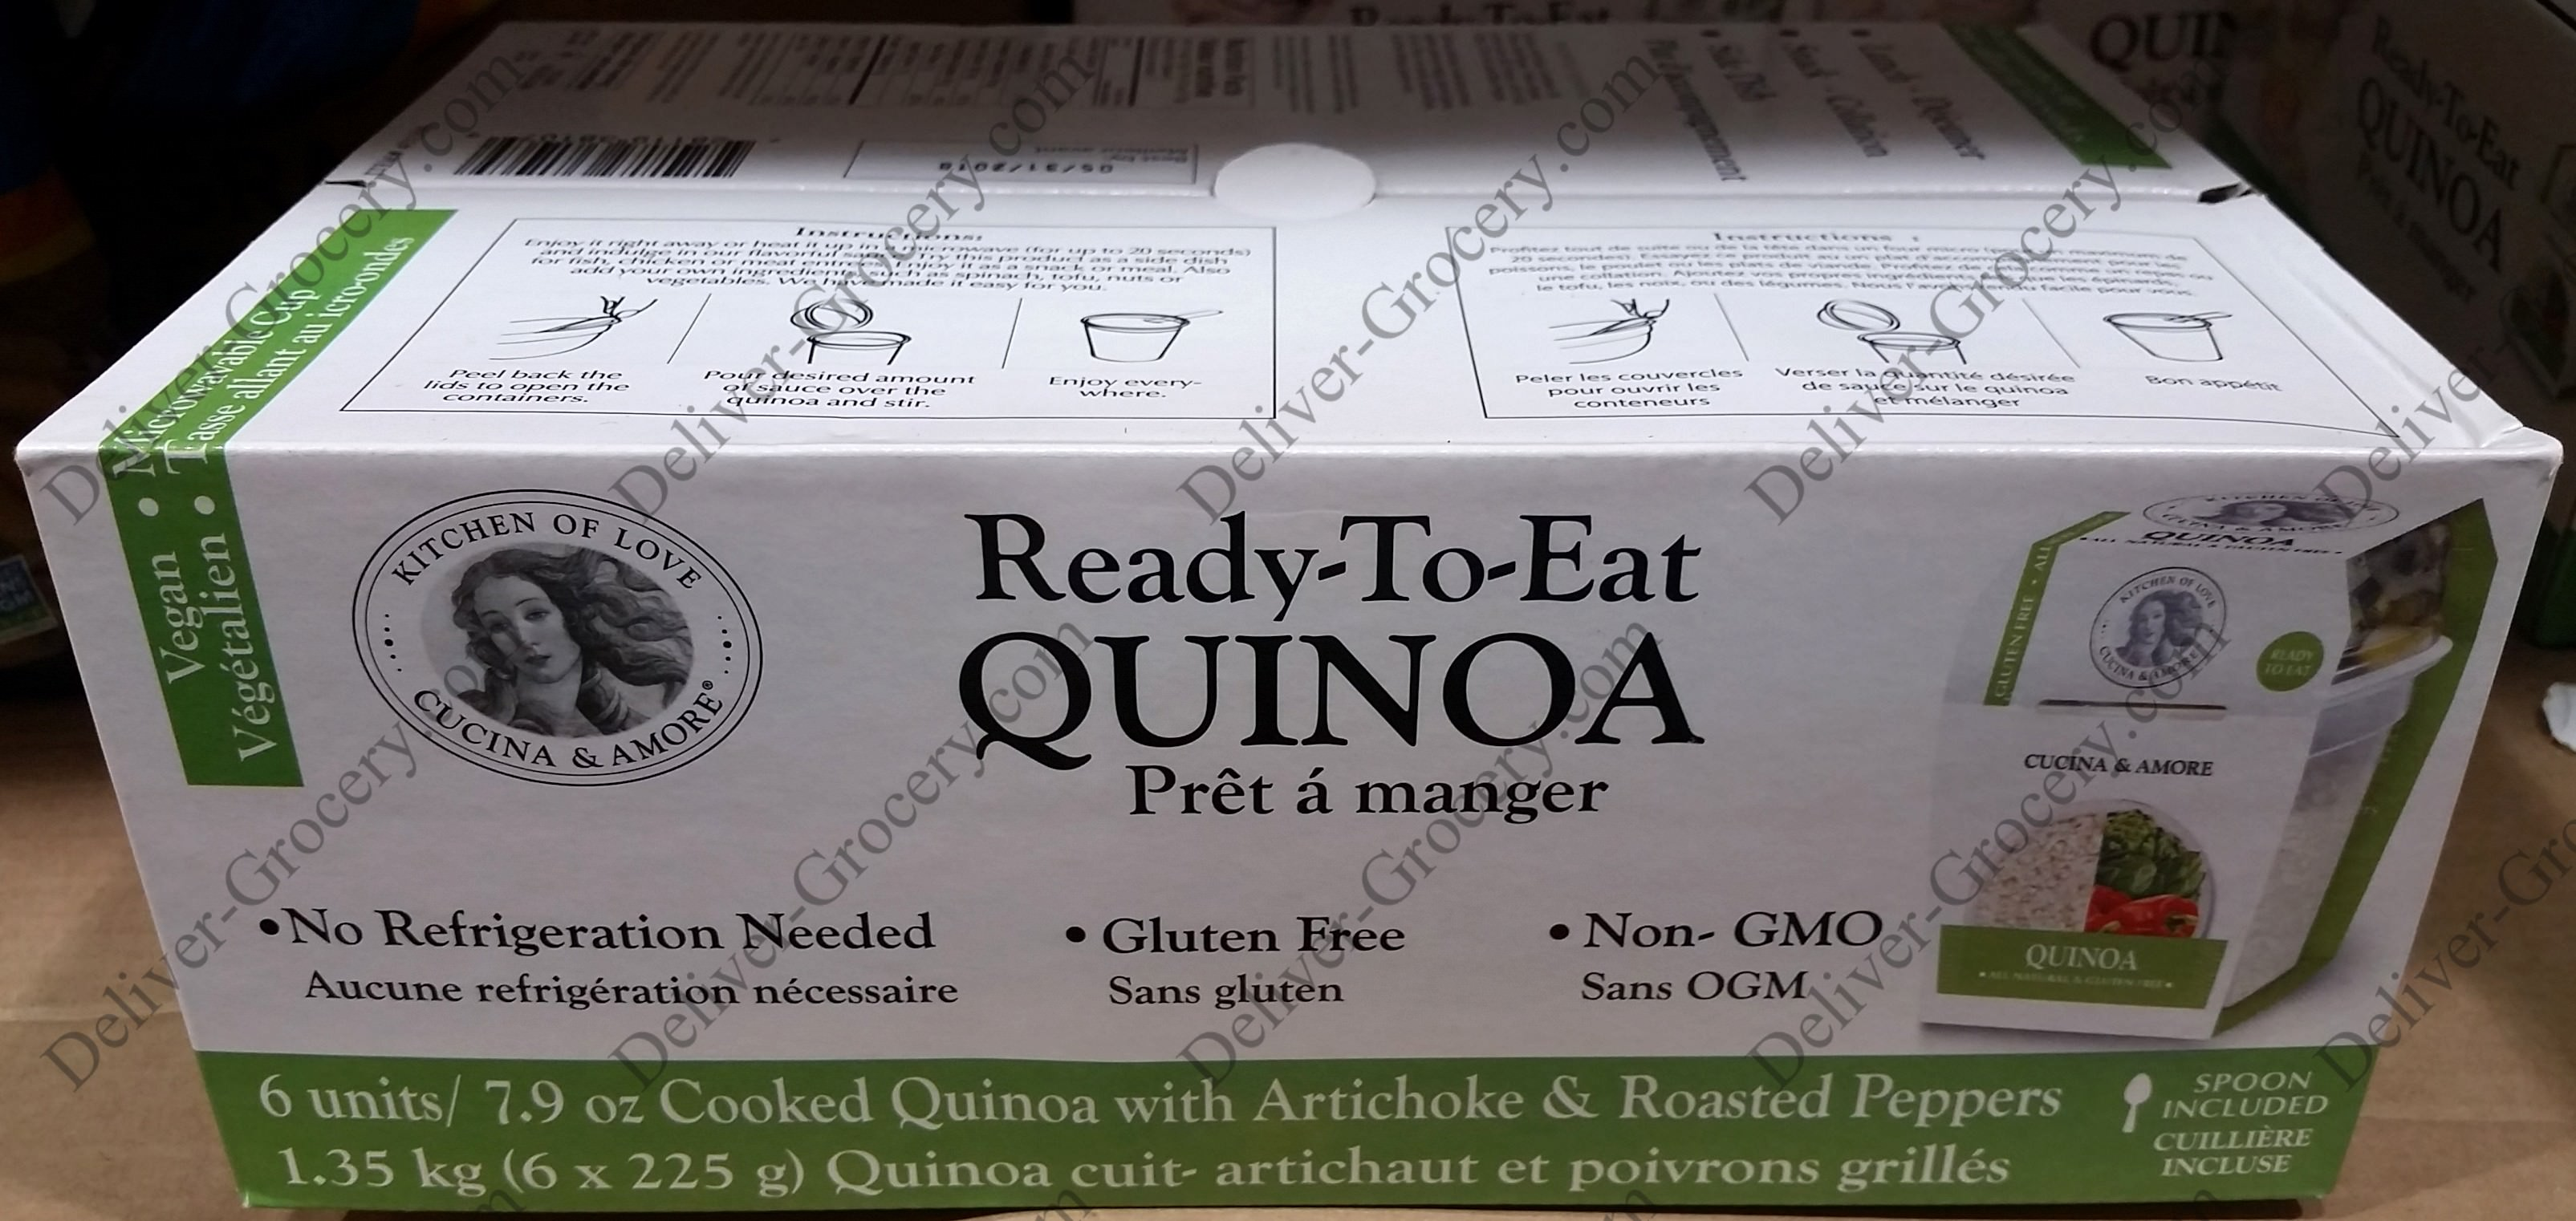 Cucina And Amore Quinoa Review Cucina Ready To Eat Quinoa 6 X 223 G Deliver Grocery Online Dg